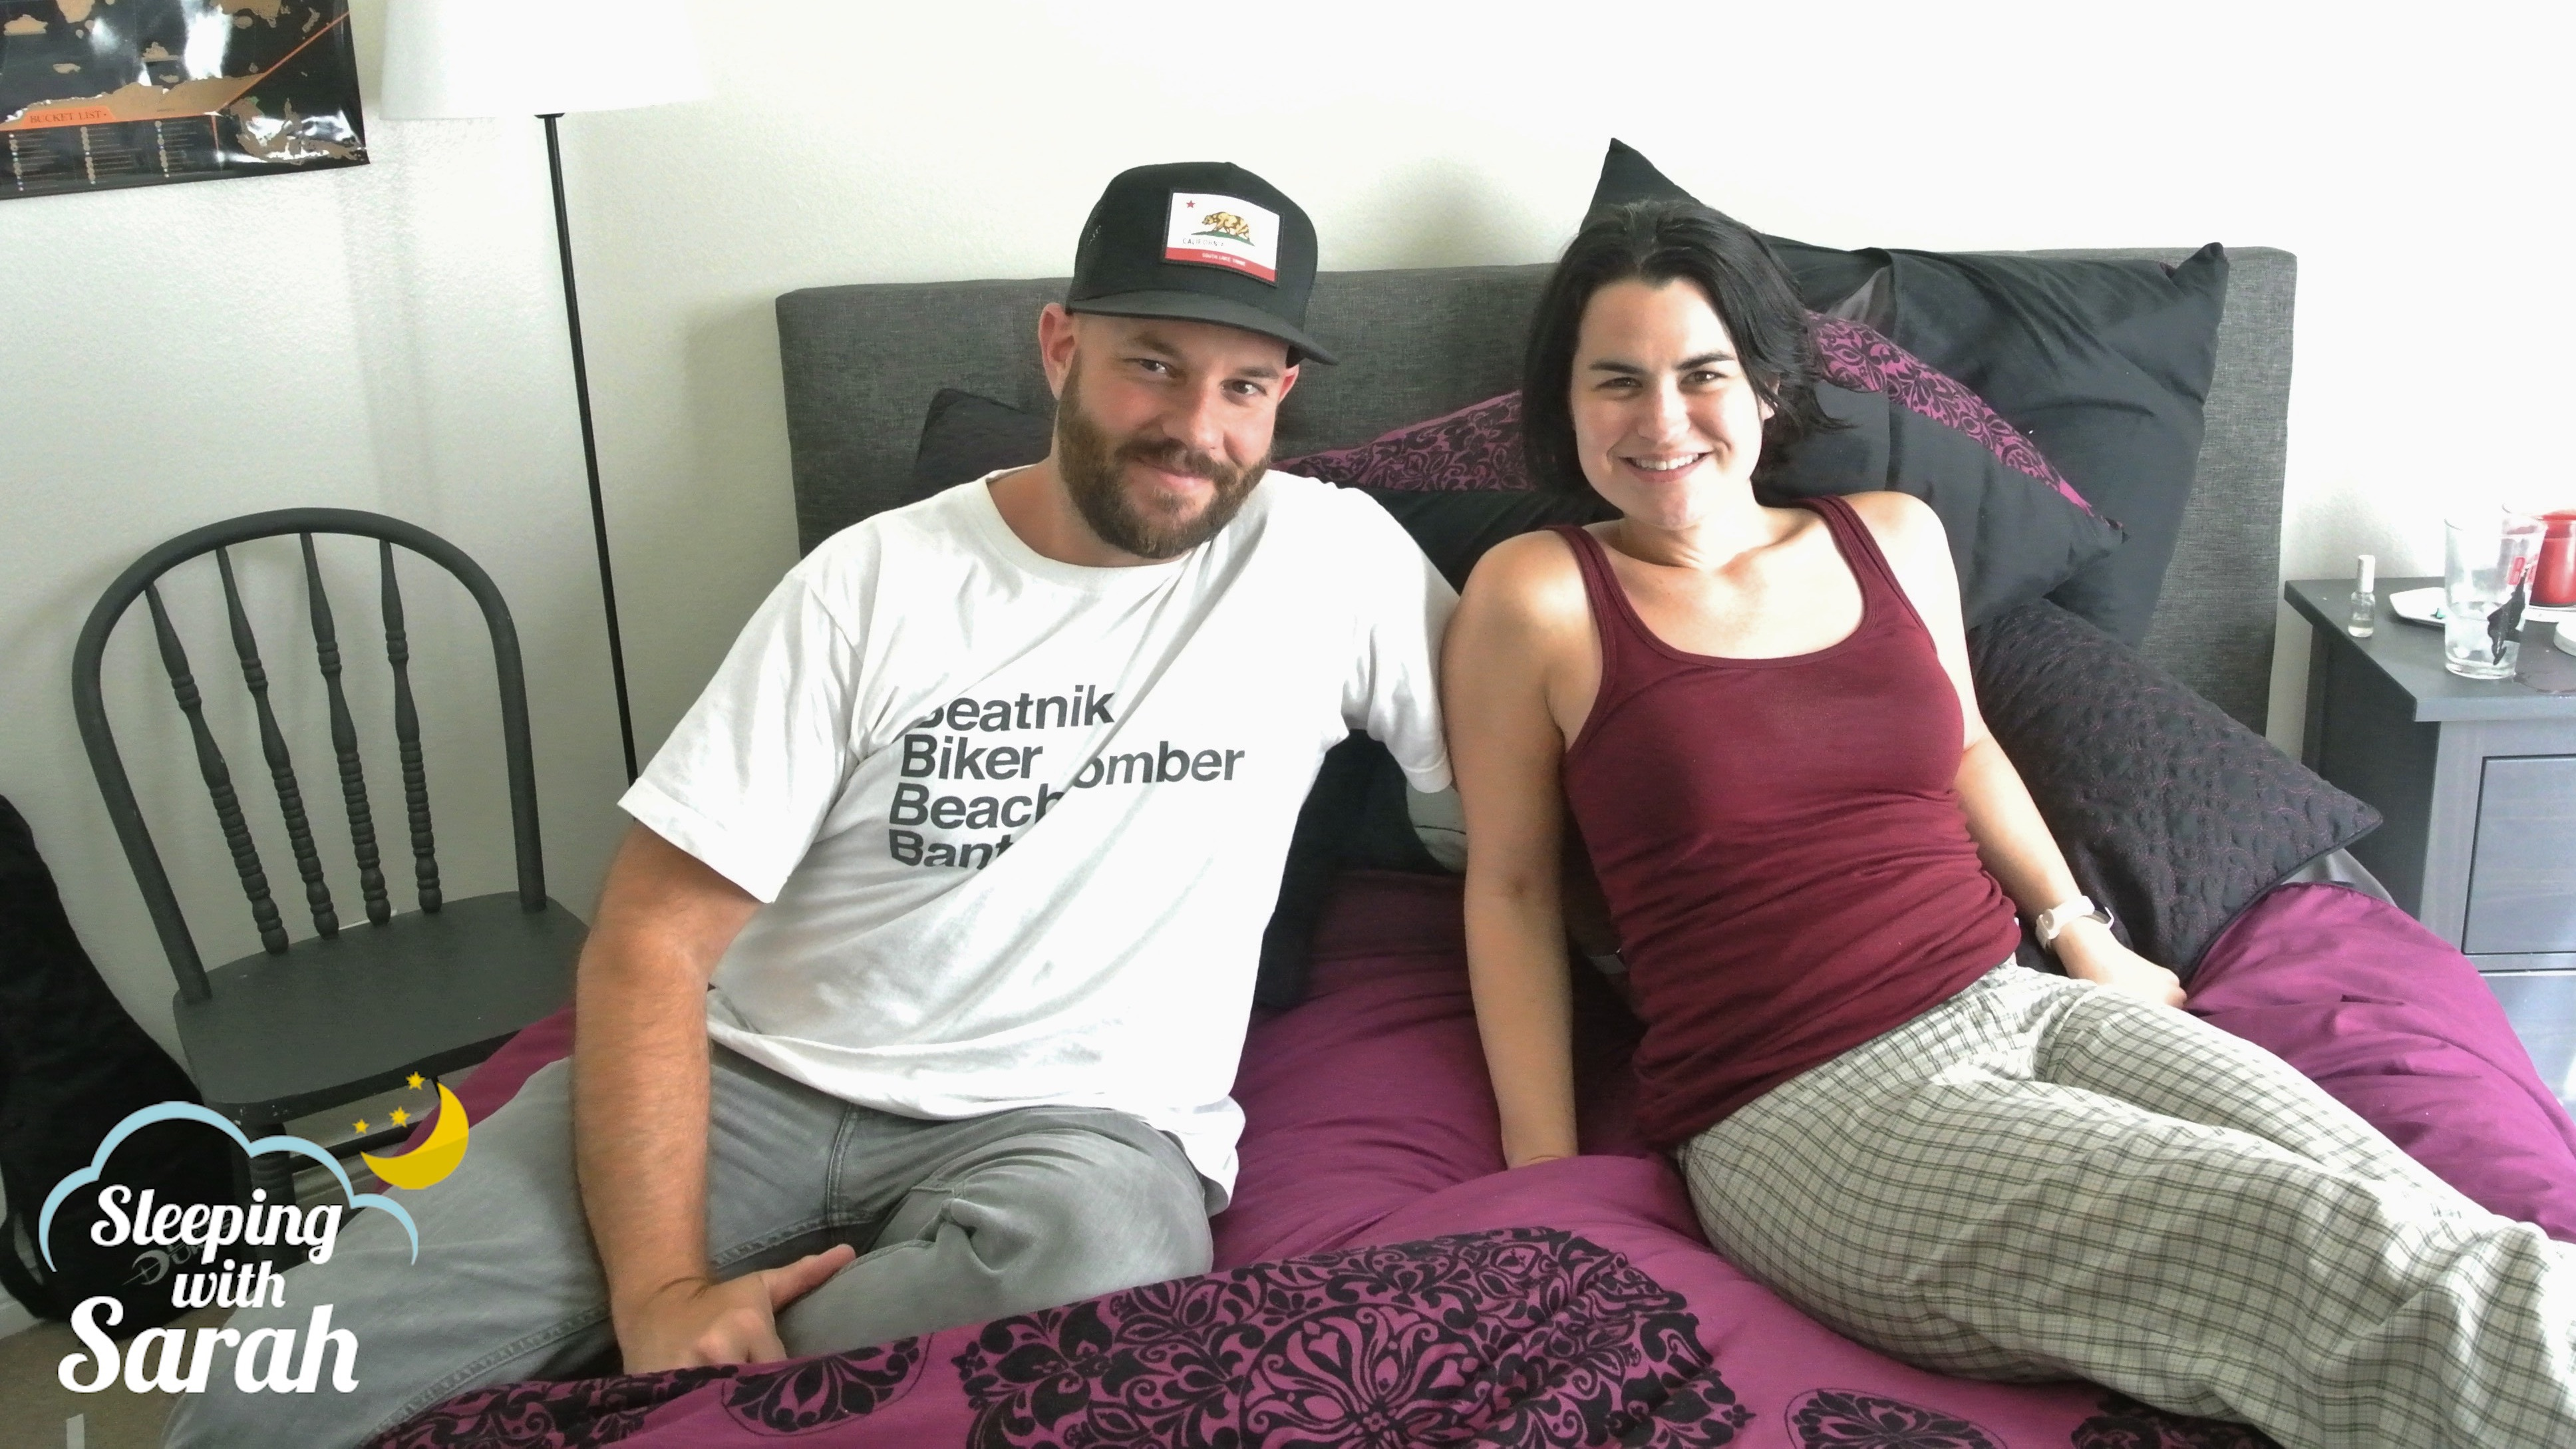 Ken Garr Sarah Albritton on Sleeping with Sarah podcast episode 89